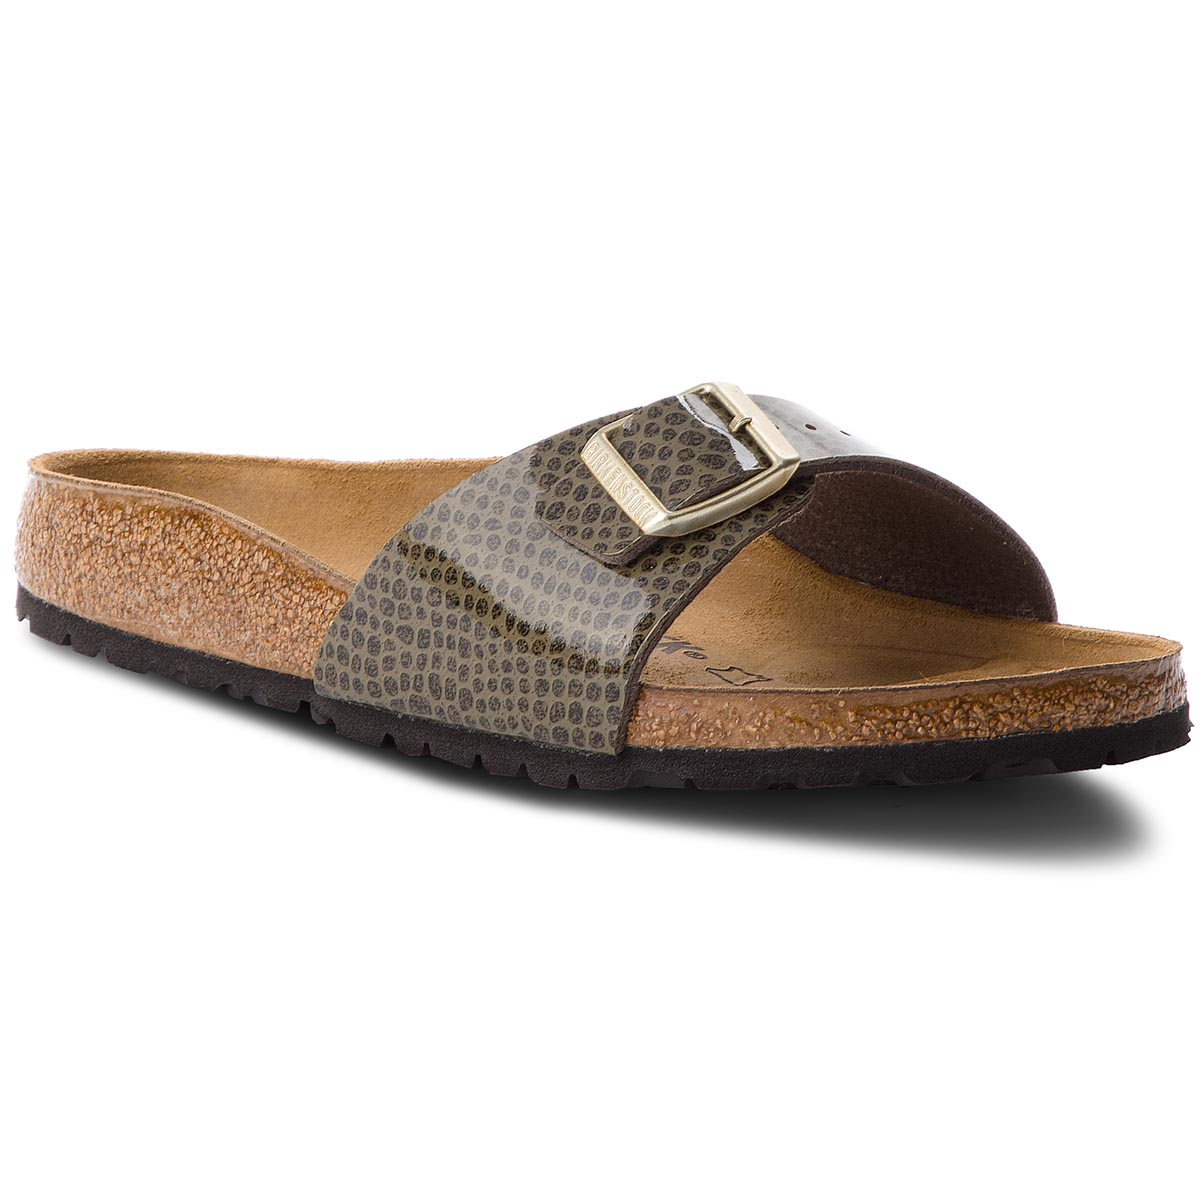 Klapki BIRKENSTOCK - Madrid Bs 1011759 Magic Snake Khaki